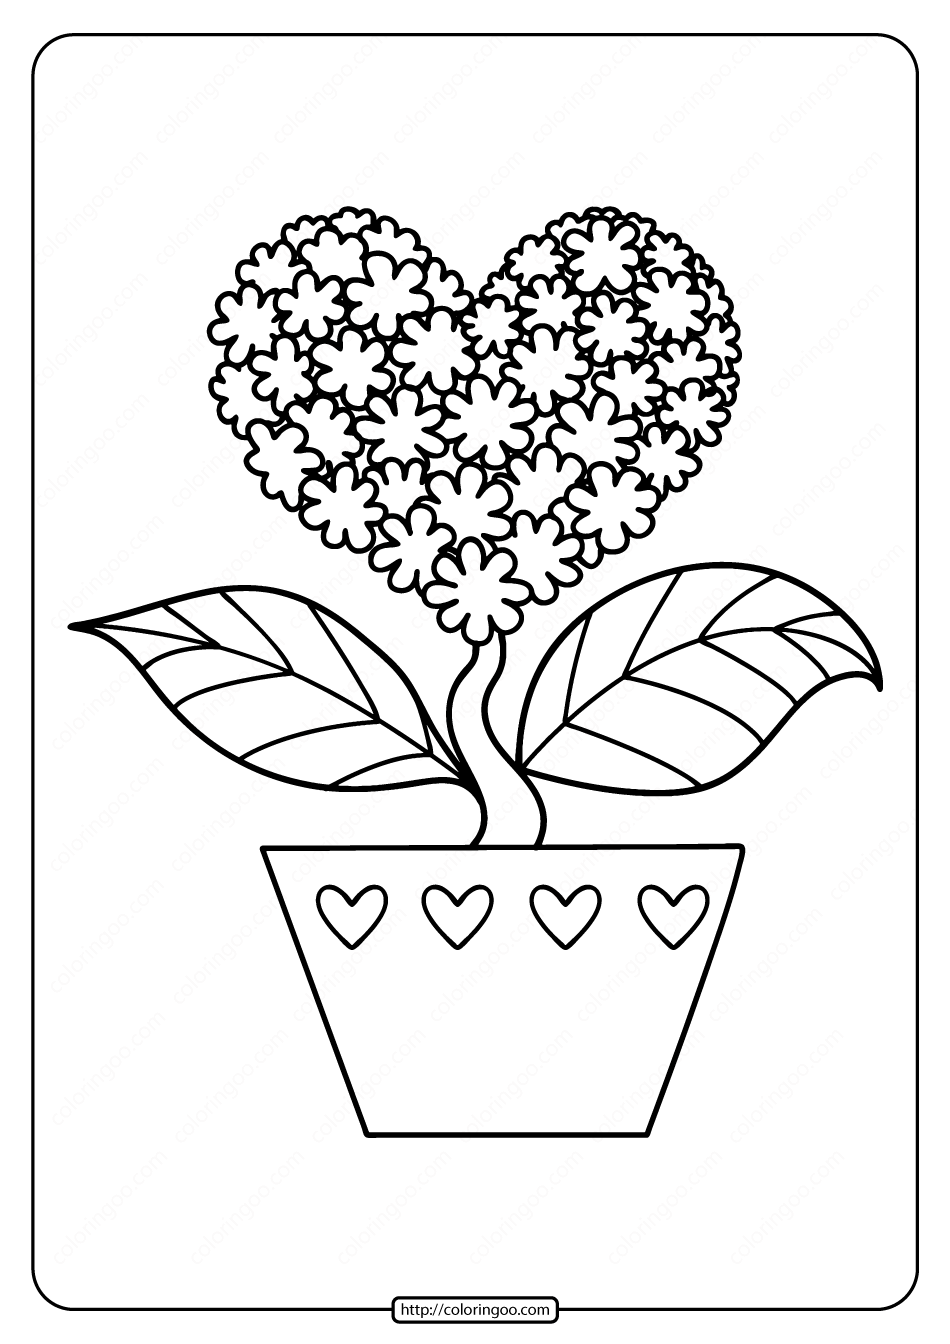 free heart coloring pages free printable heart shaped flower coloring page heart pages coloring free